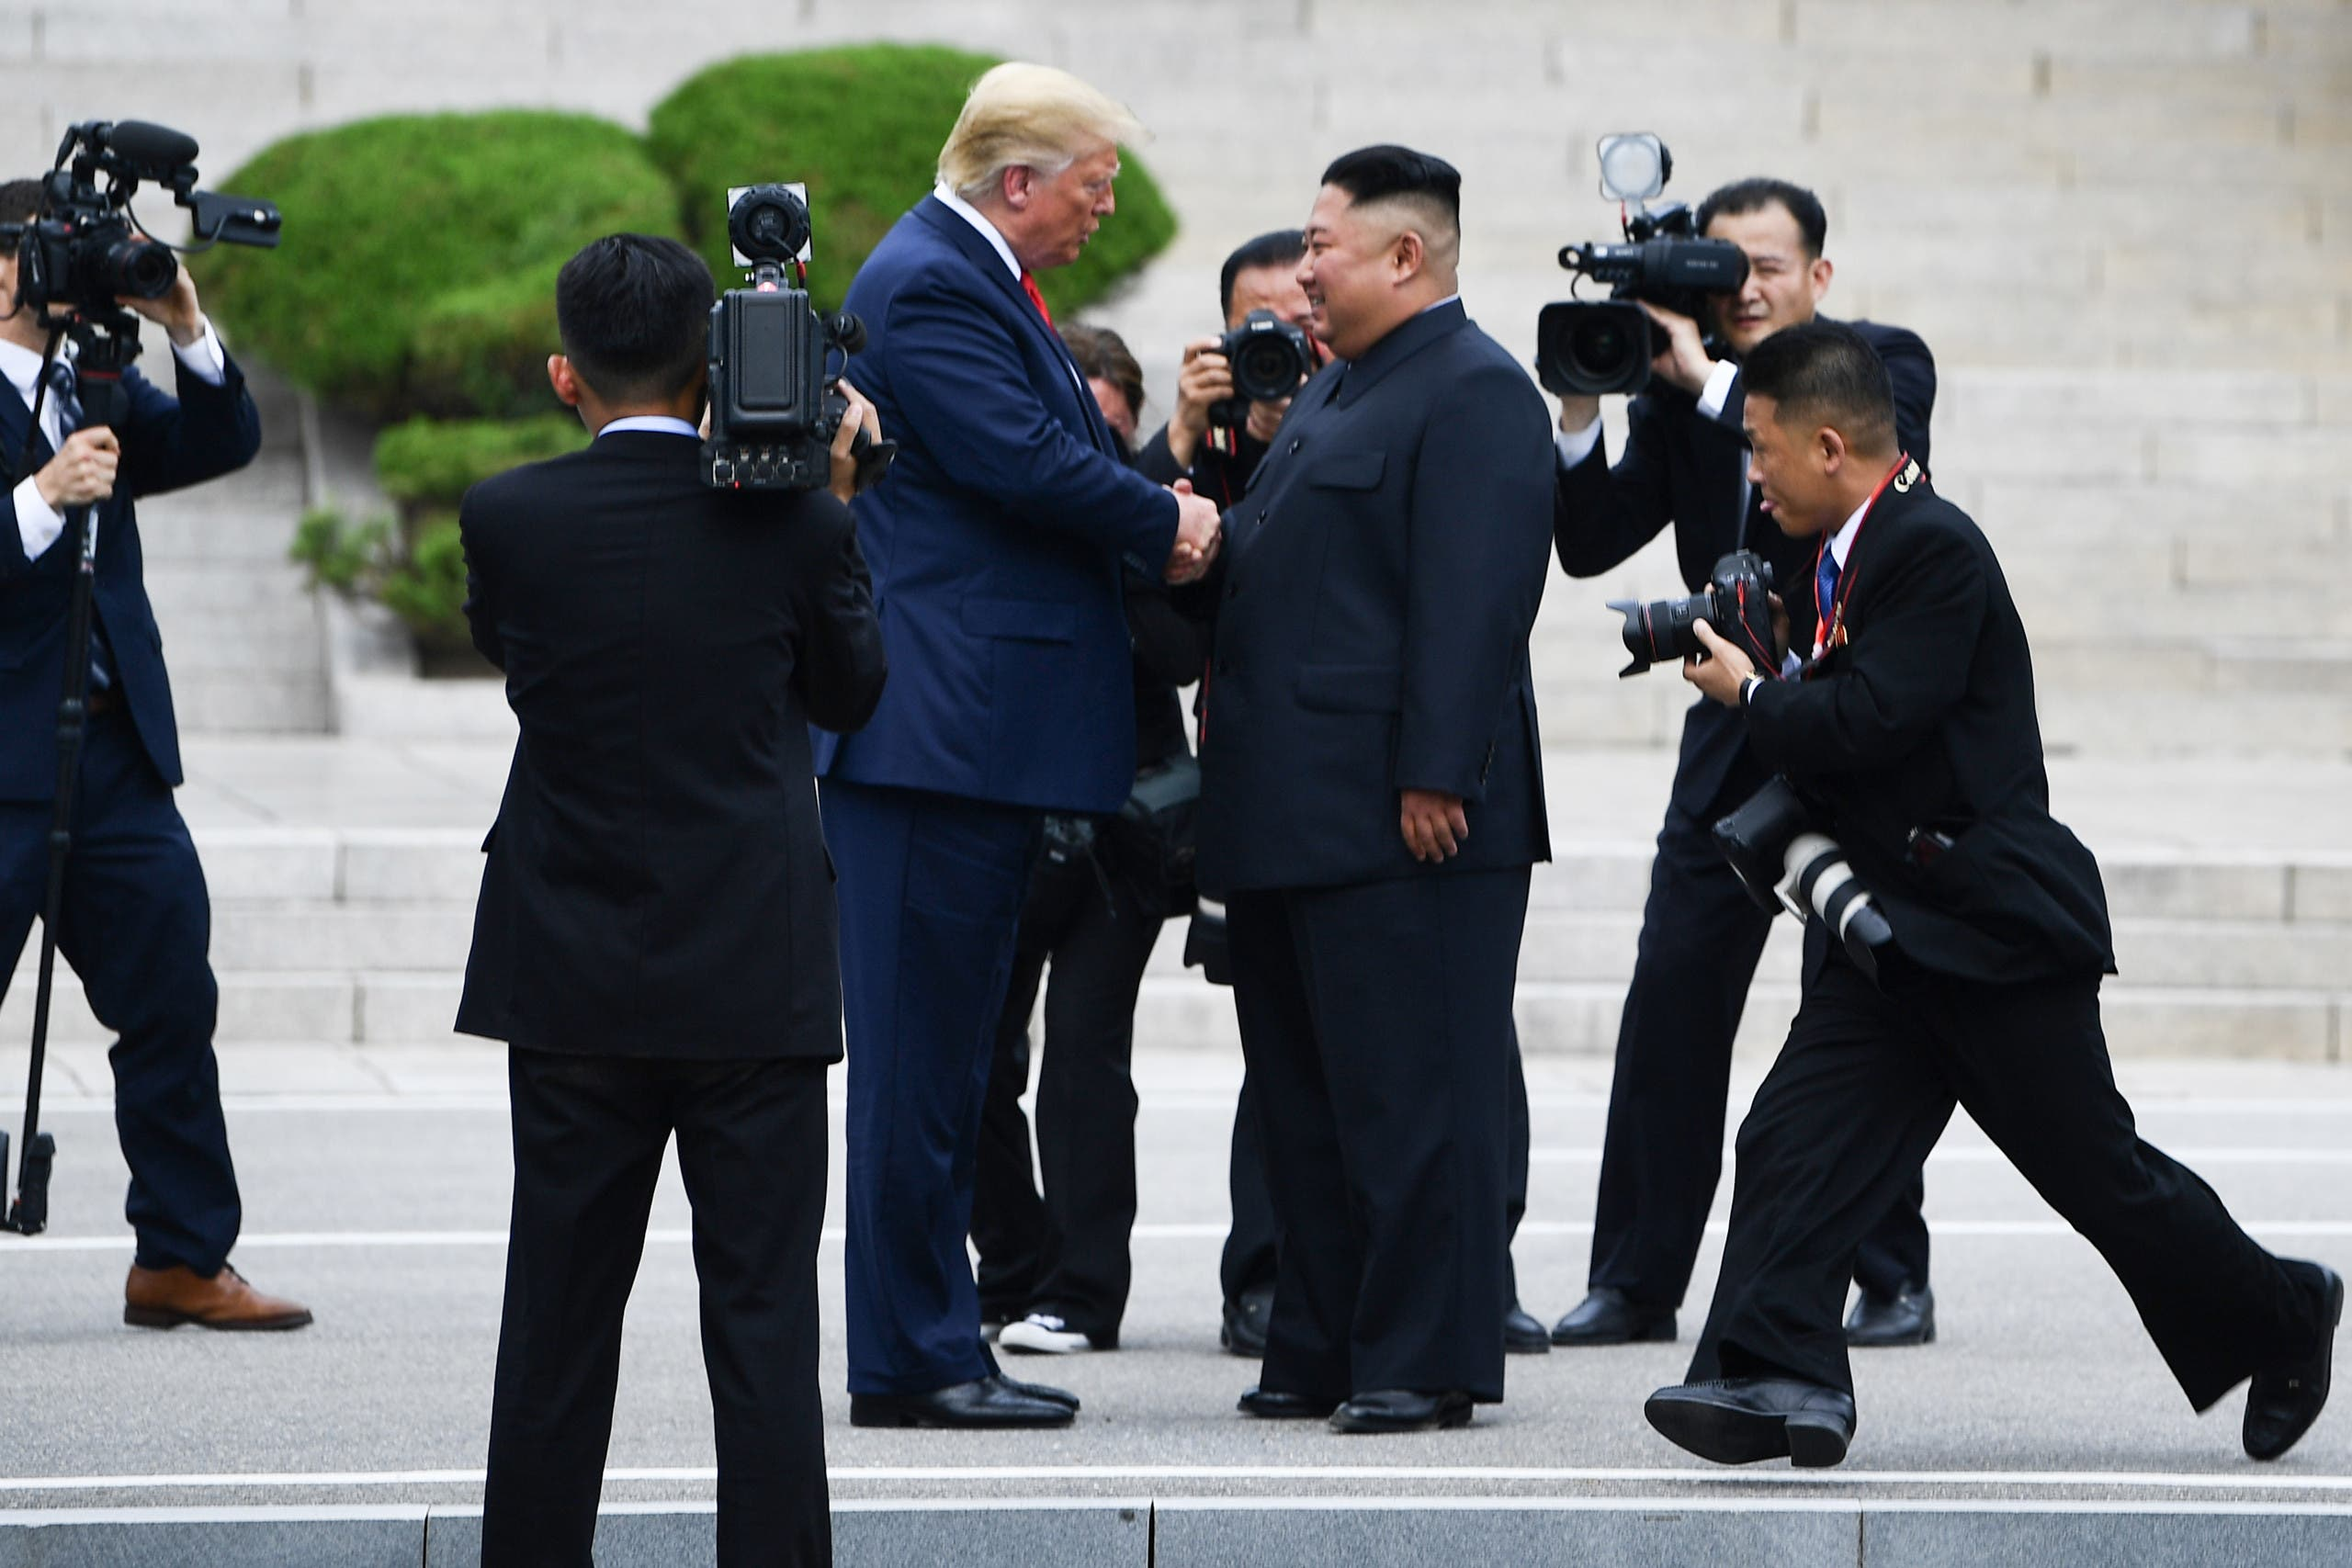 Kim shakes hands with Trump north of the Military Demarcation Line that divides North and South Korea, on June 30, 2019. (AFP)